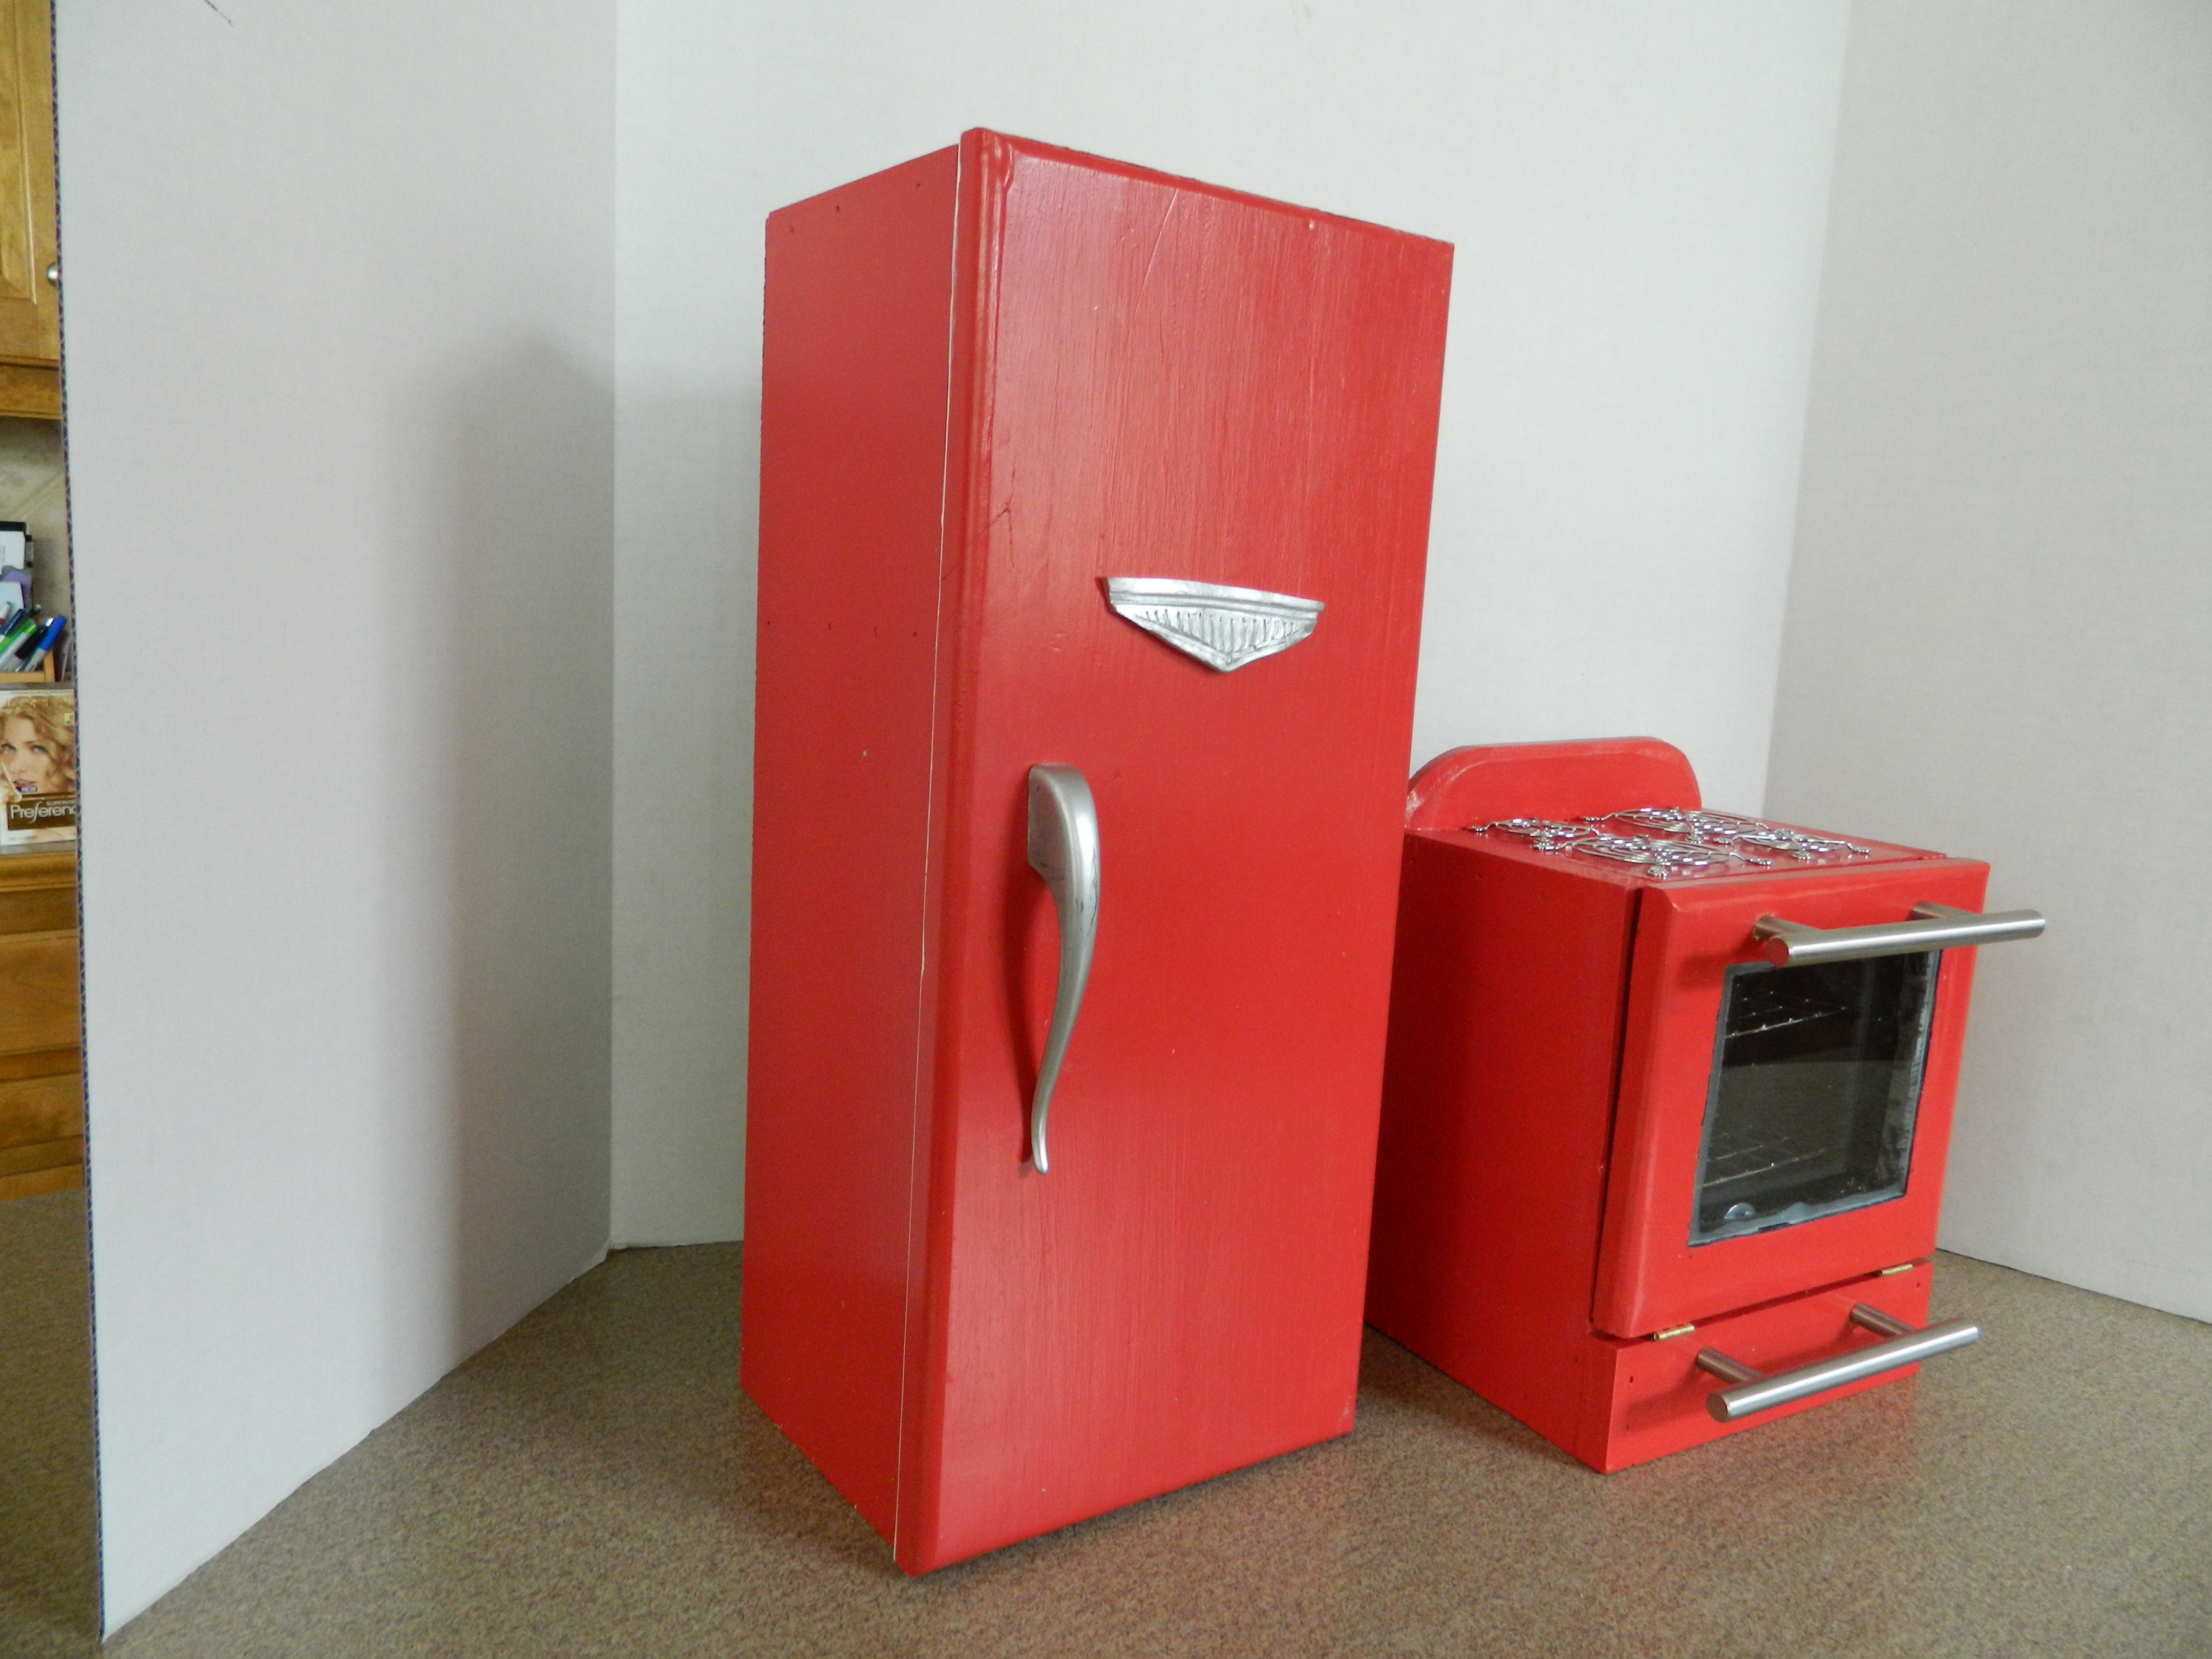 Doll House Appliances Kitchenaide Red Refrigerator and Stove